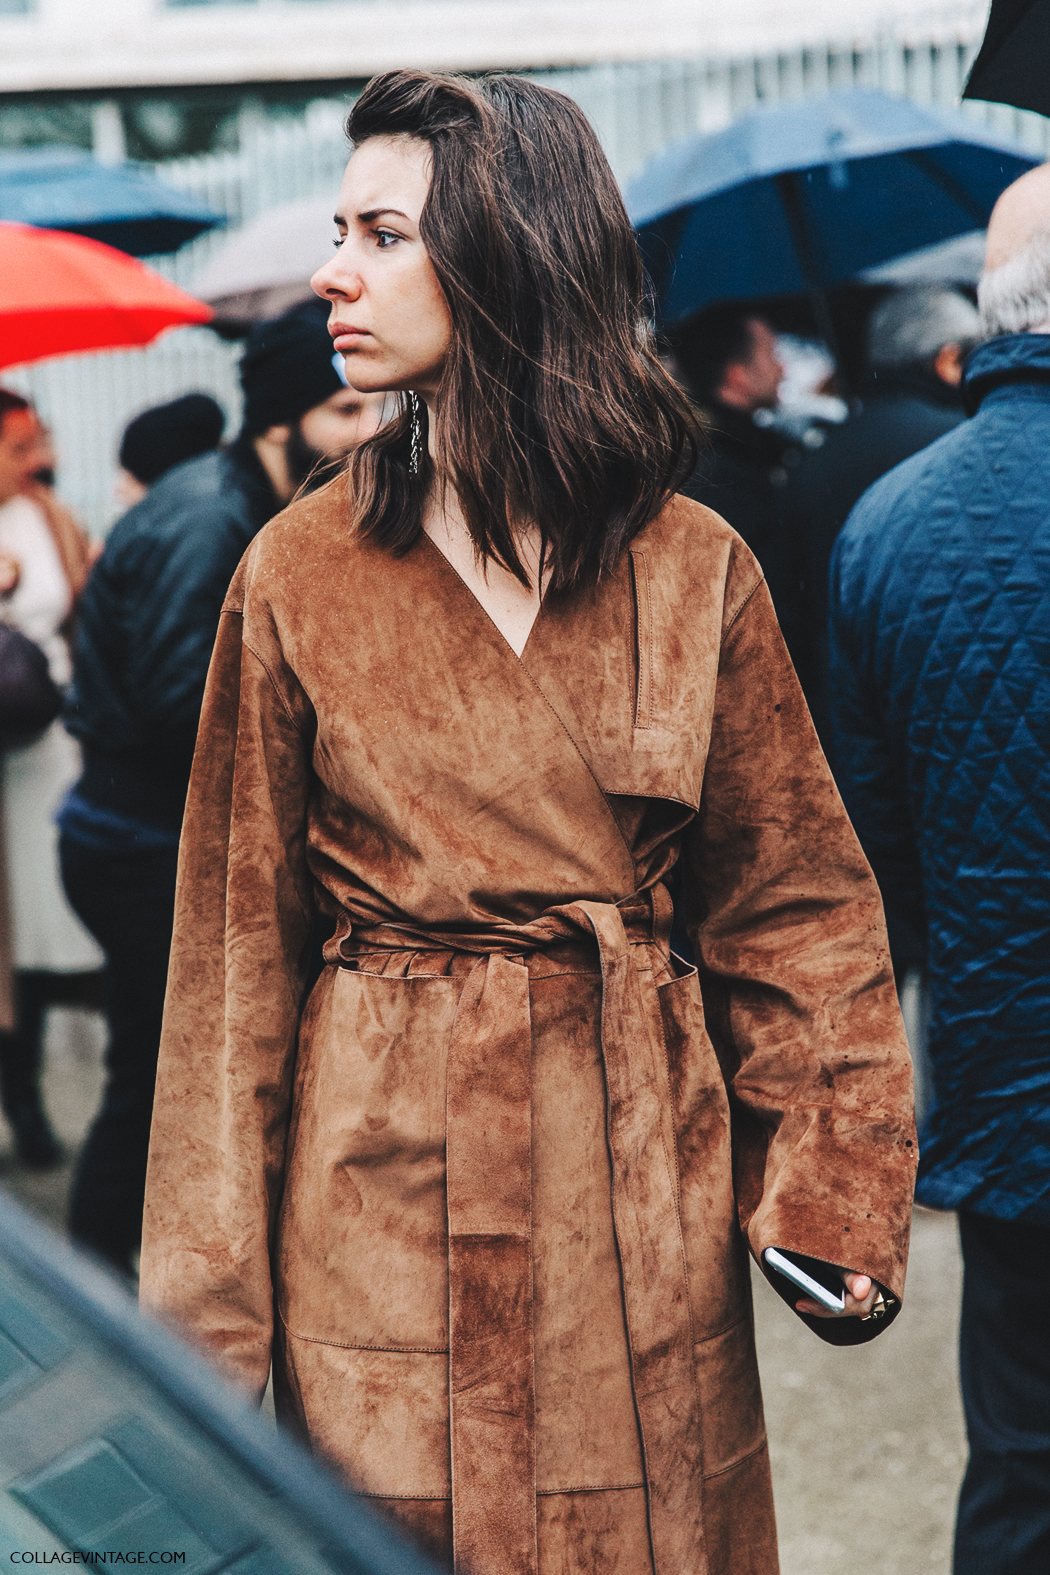 PFW-Paris_Fashion_Week_Fall_2016-Street_Style-Collage_Vintage-Natasha_Goldenberg-Suede_Trench-Loewe_Puzzle_Bag-